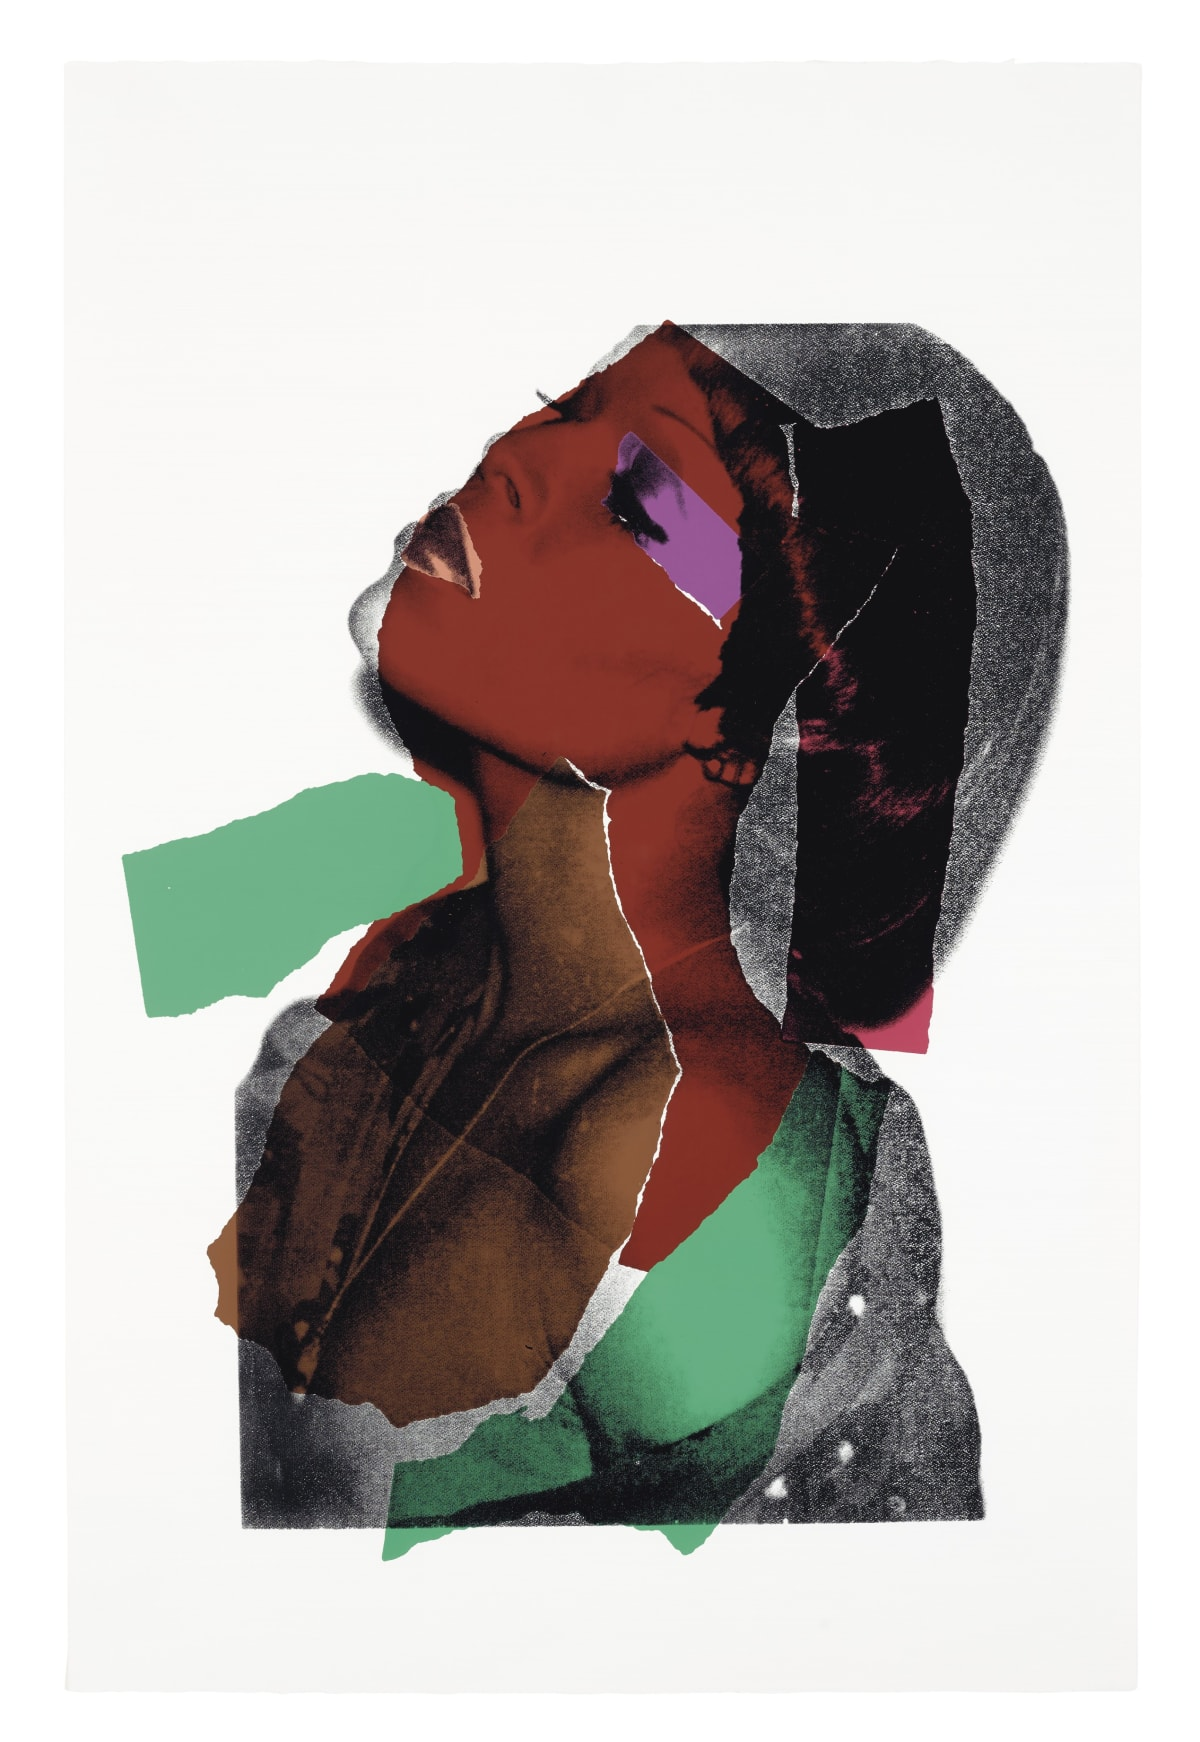 Ladies and Gentlemen, II.131, 1975, by Andy Warhol, Portfolio of Ten Screenprints from an edition of 125, at Coskun Fine Art